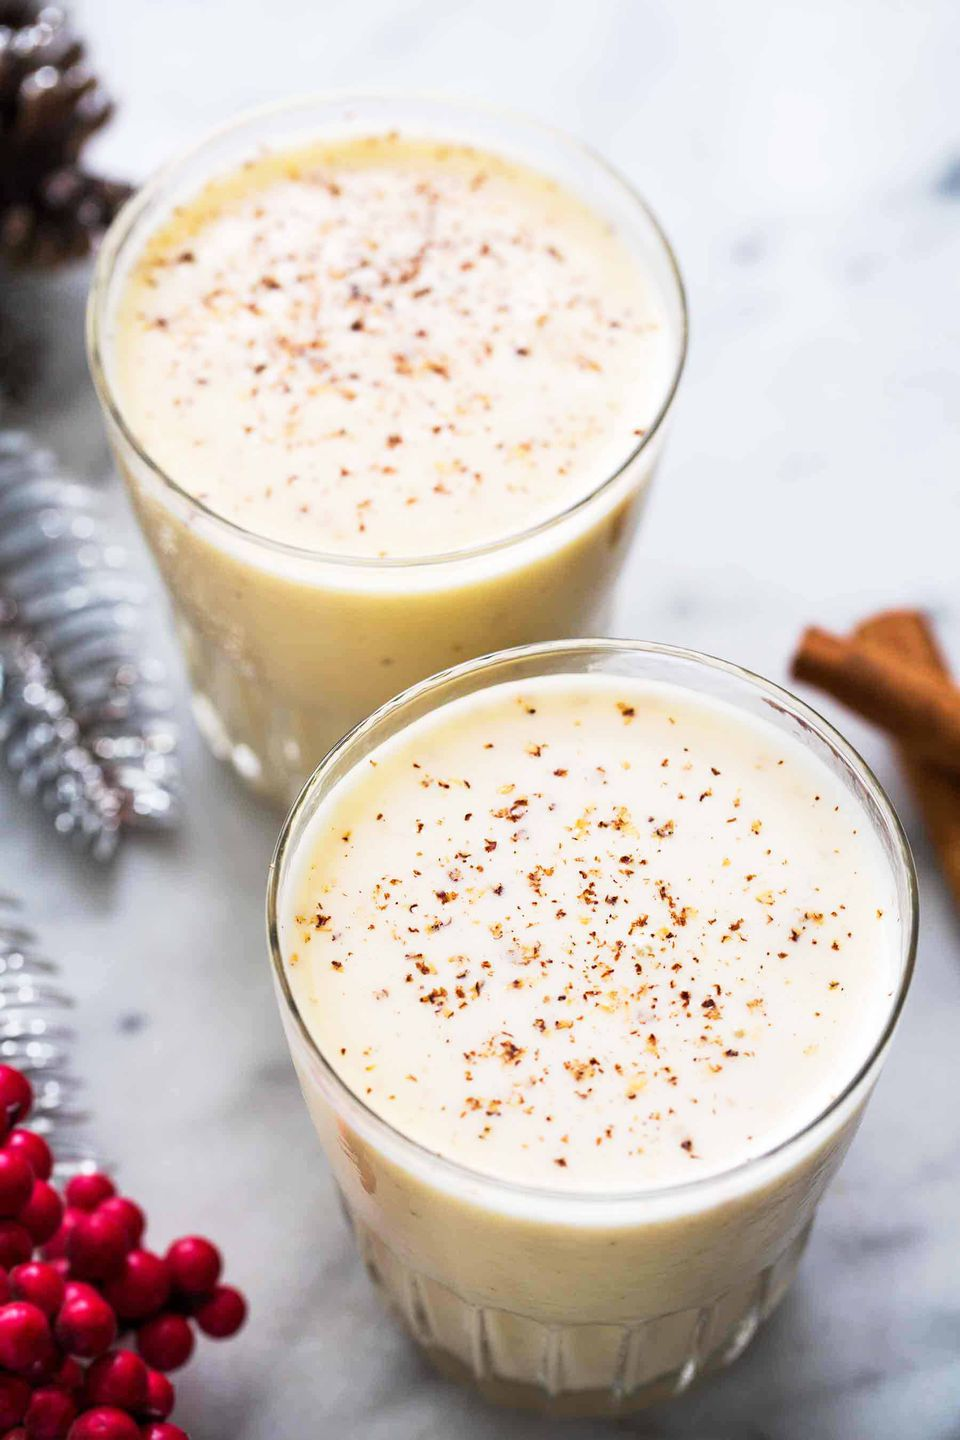 Homemade eggnog served in two glasses with nutmeg sprinkled over top